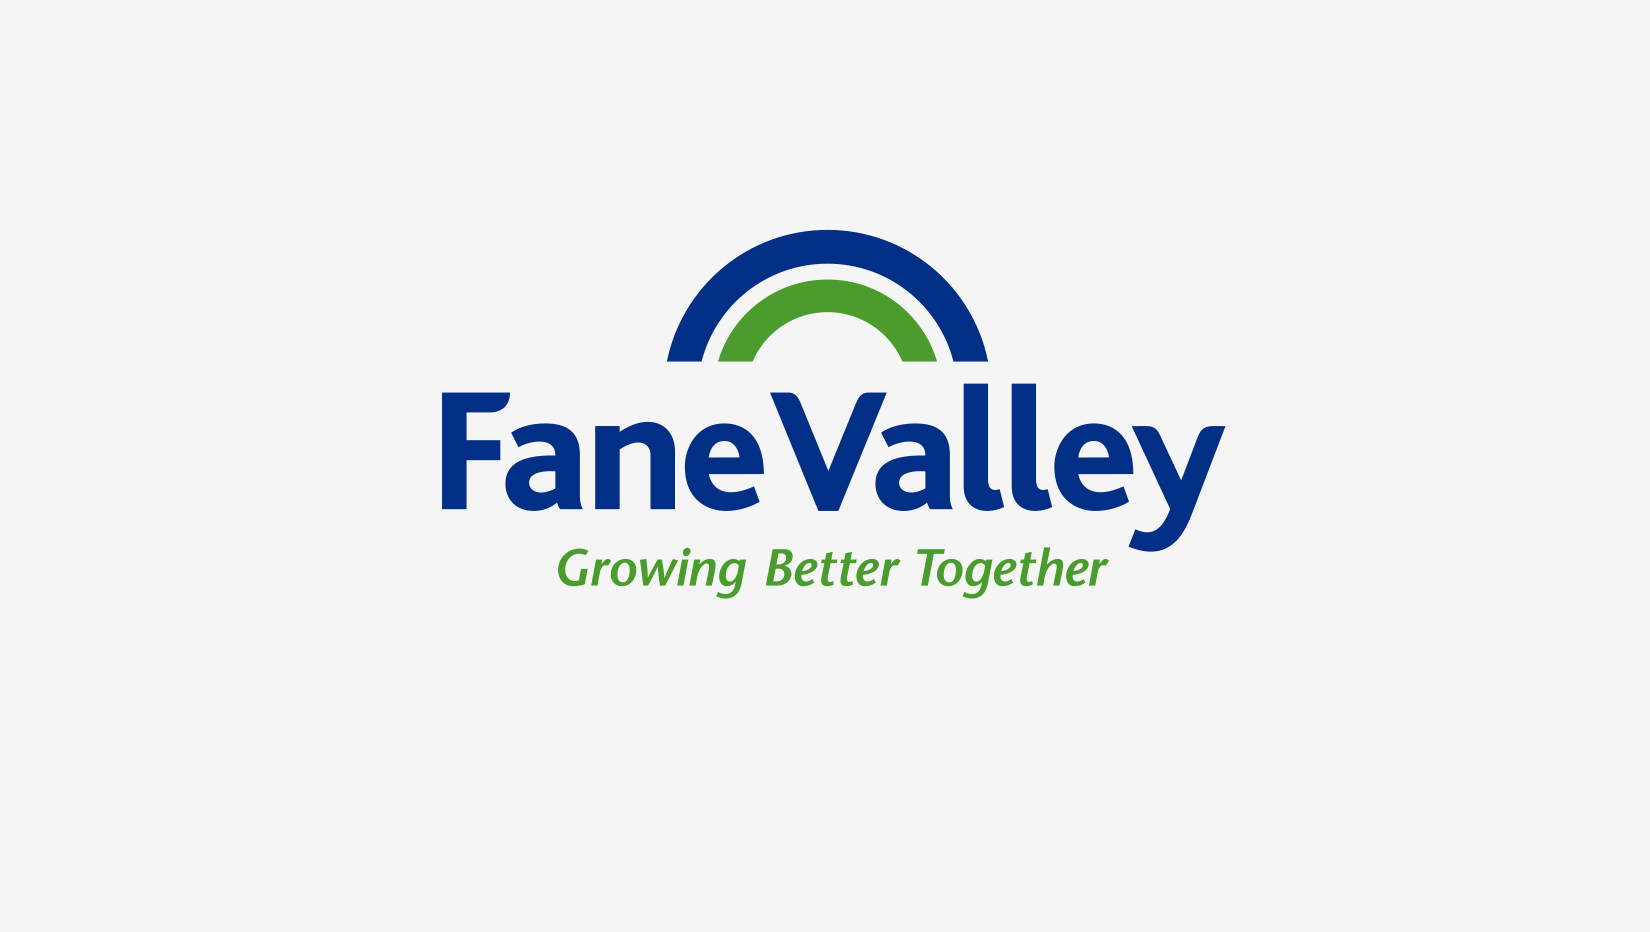 Fane Valley Brand